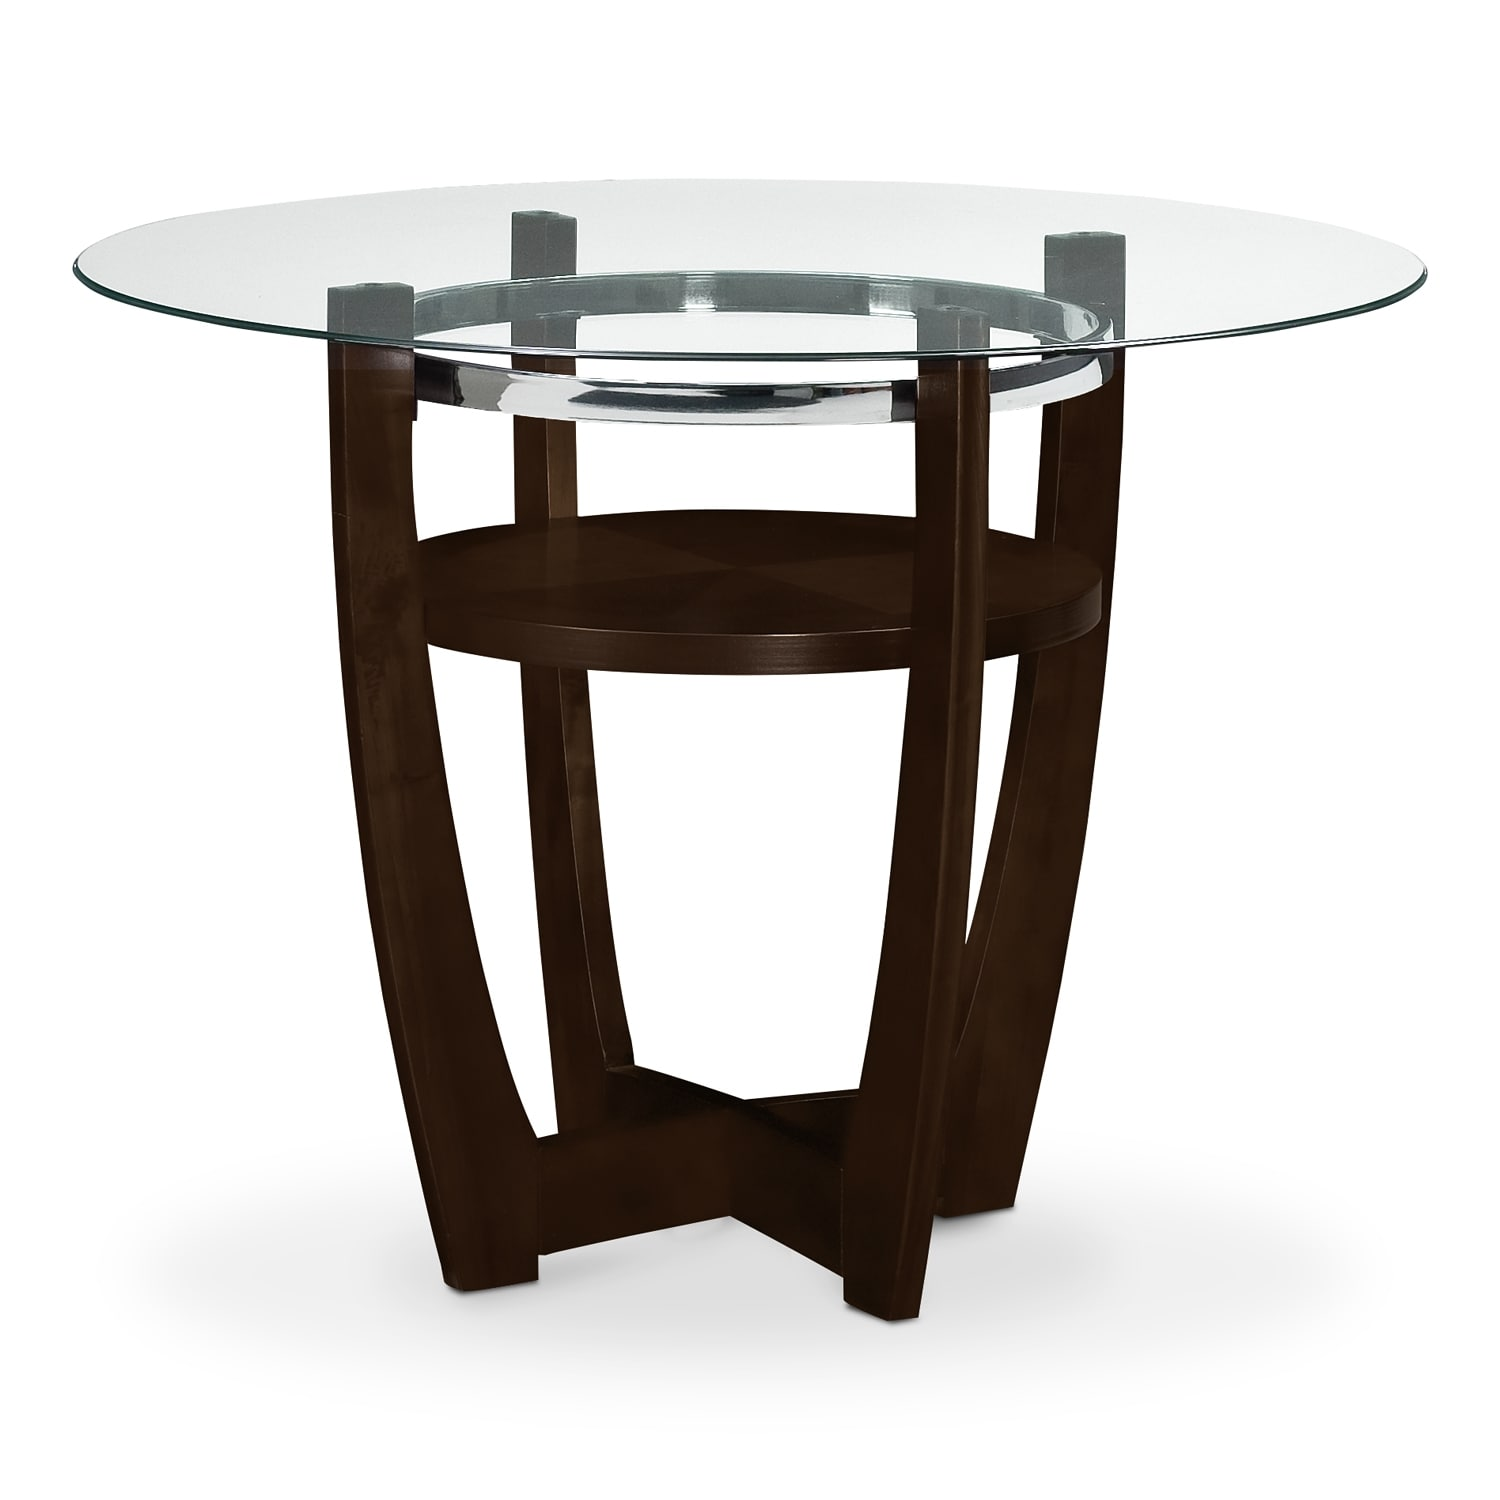 Alcove Counter-Height Table - Merlot